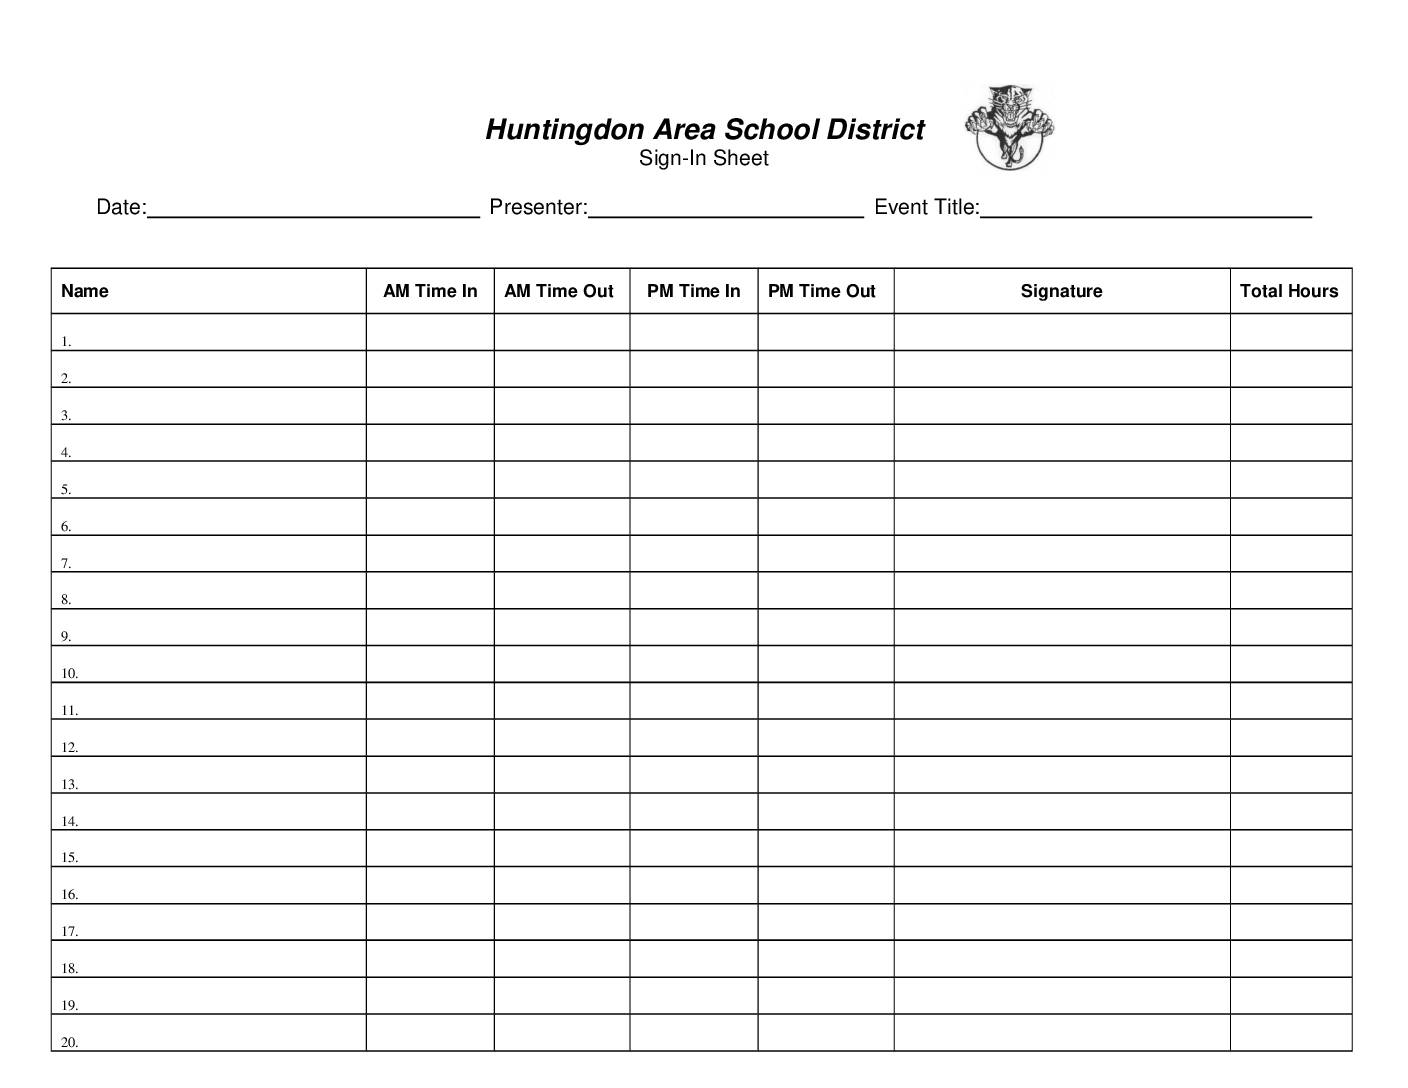 Pd Sign In Sheet Huntingdon Area School District